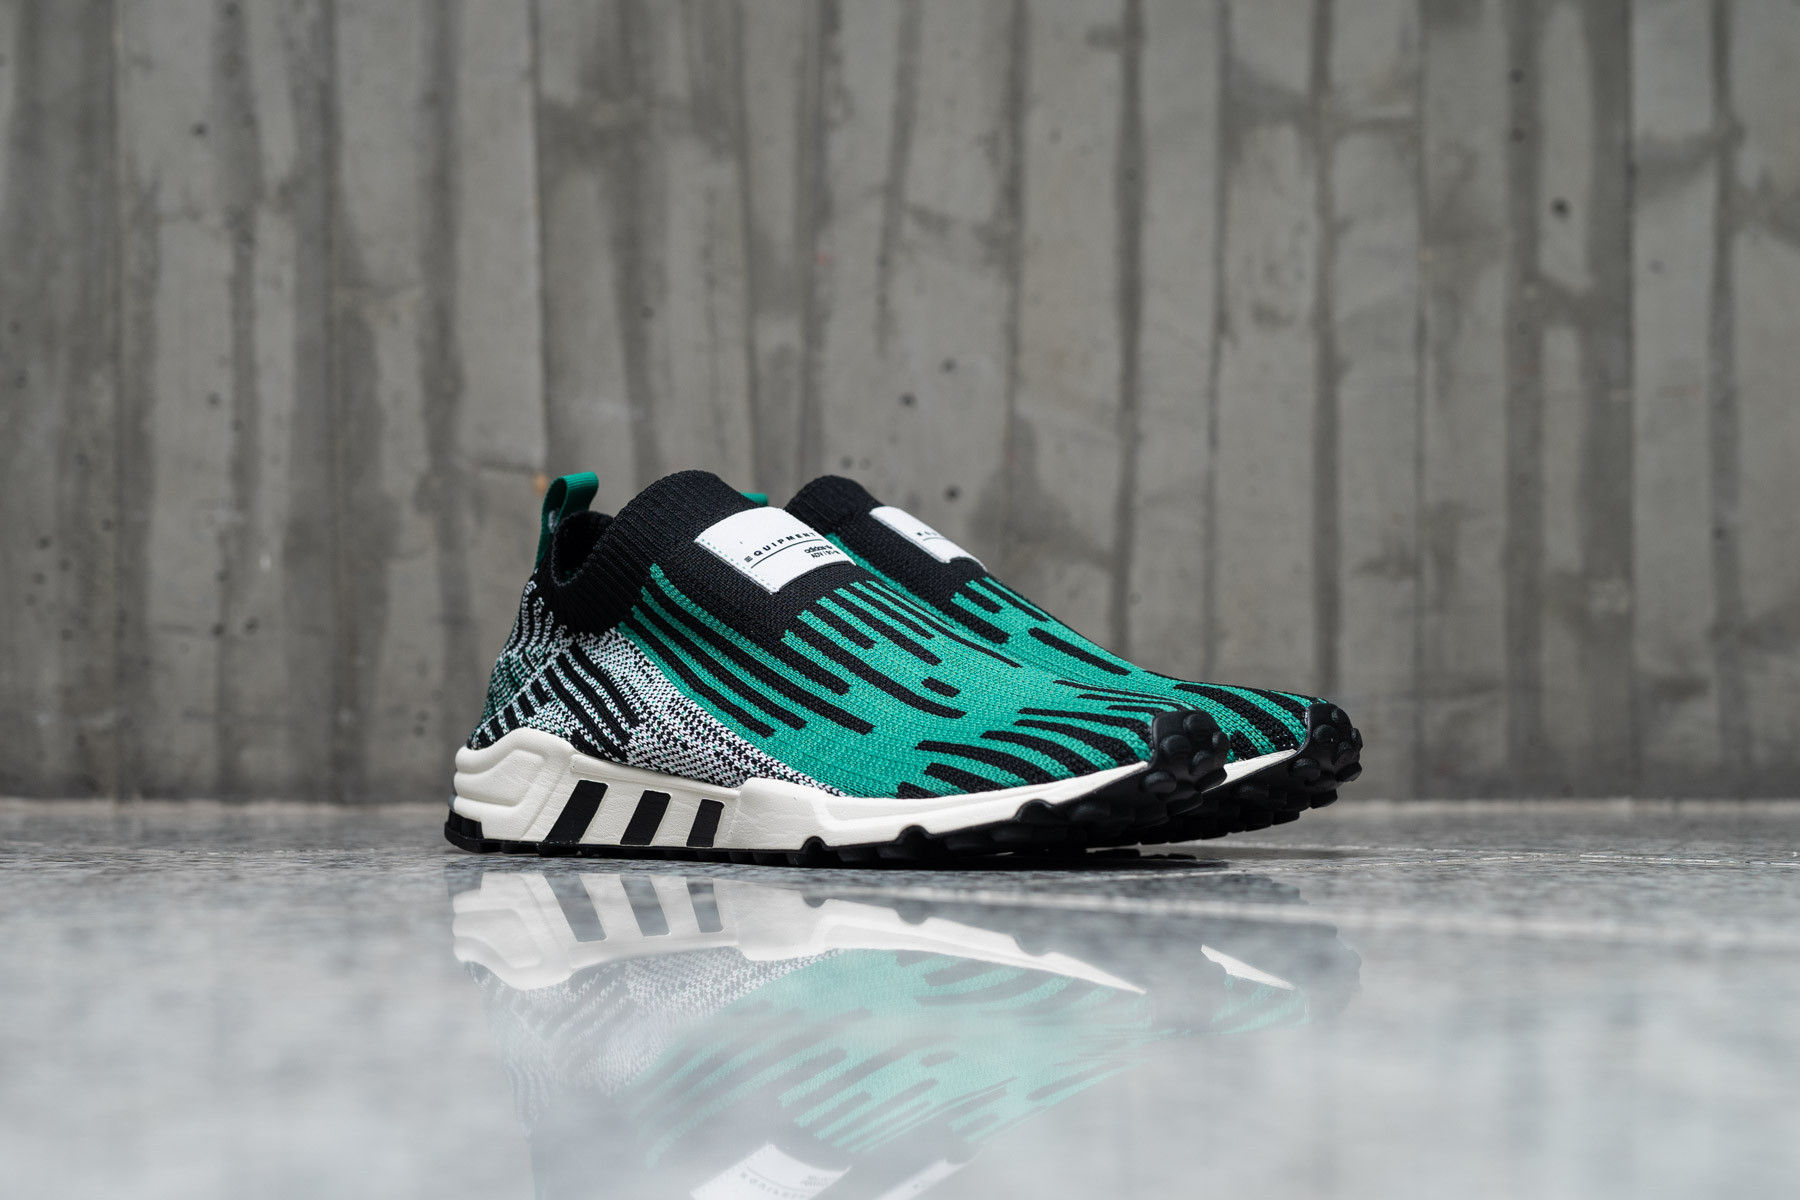 Adidas EQT Support SK PK Herre Sneakers Sneaker.no